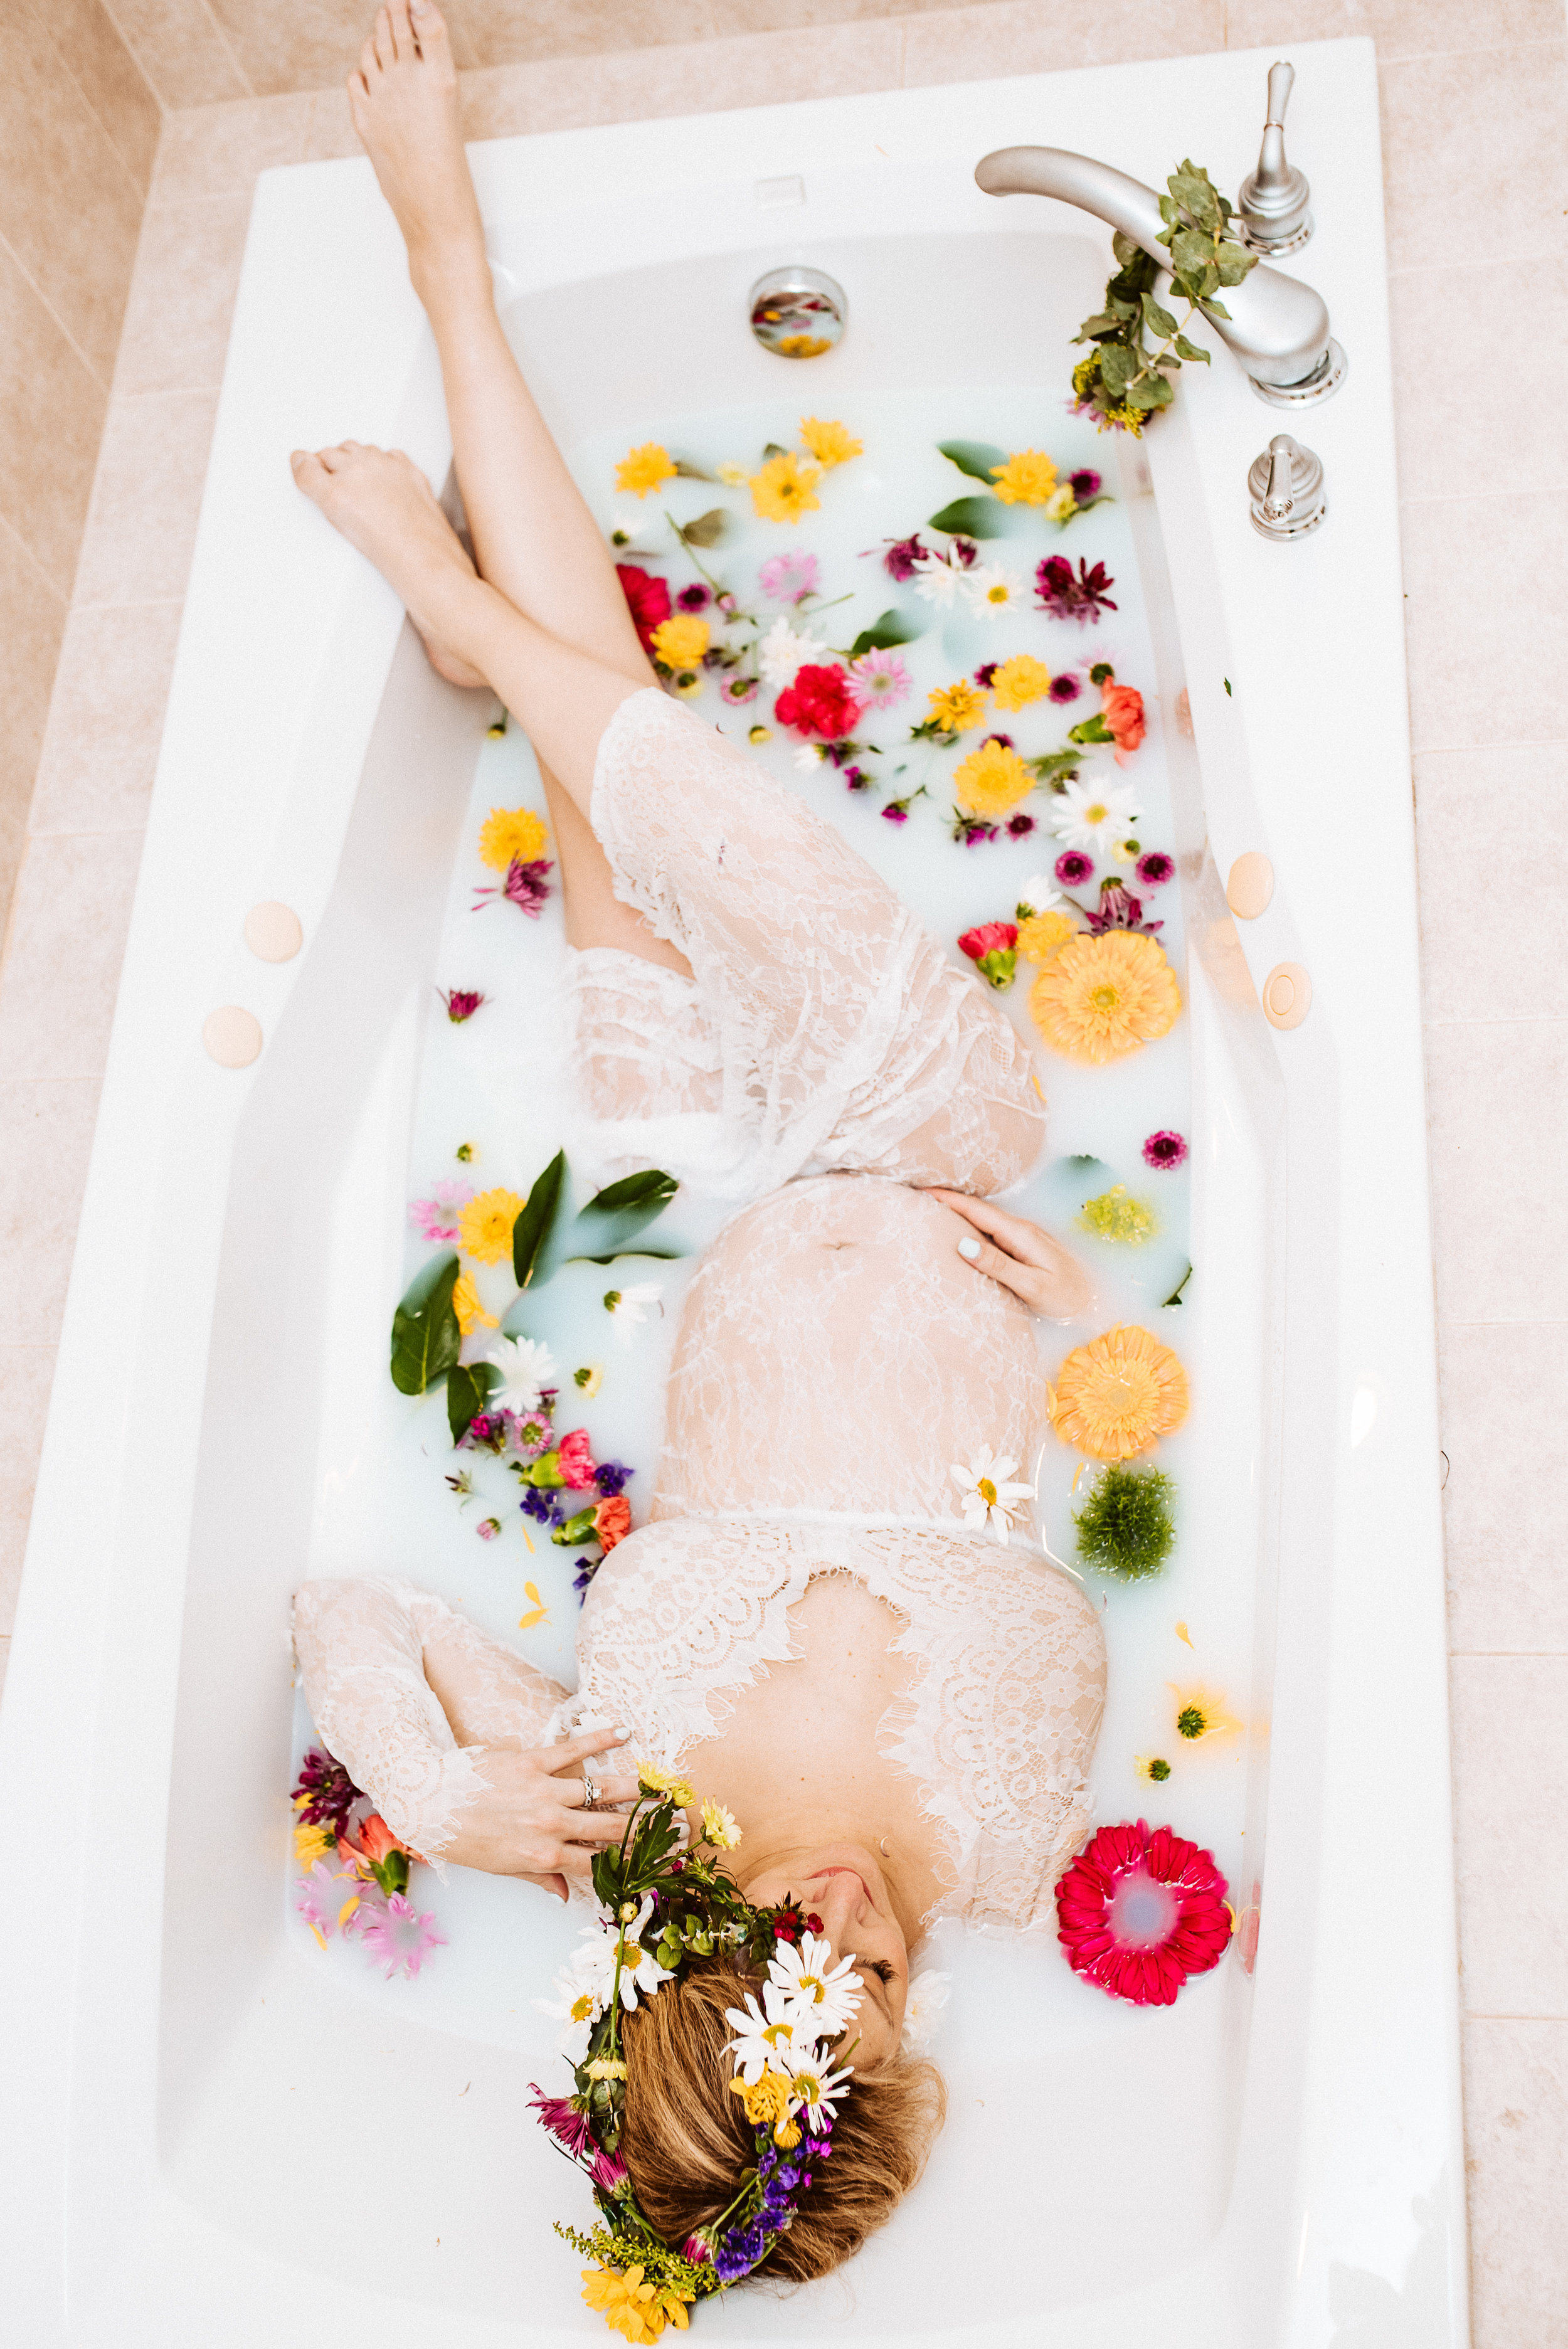 maternity session in bath tub pittsburgh